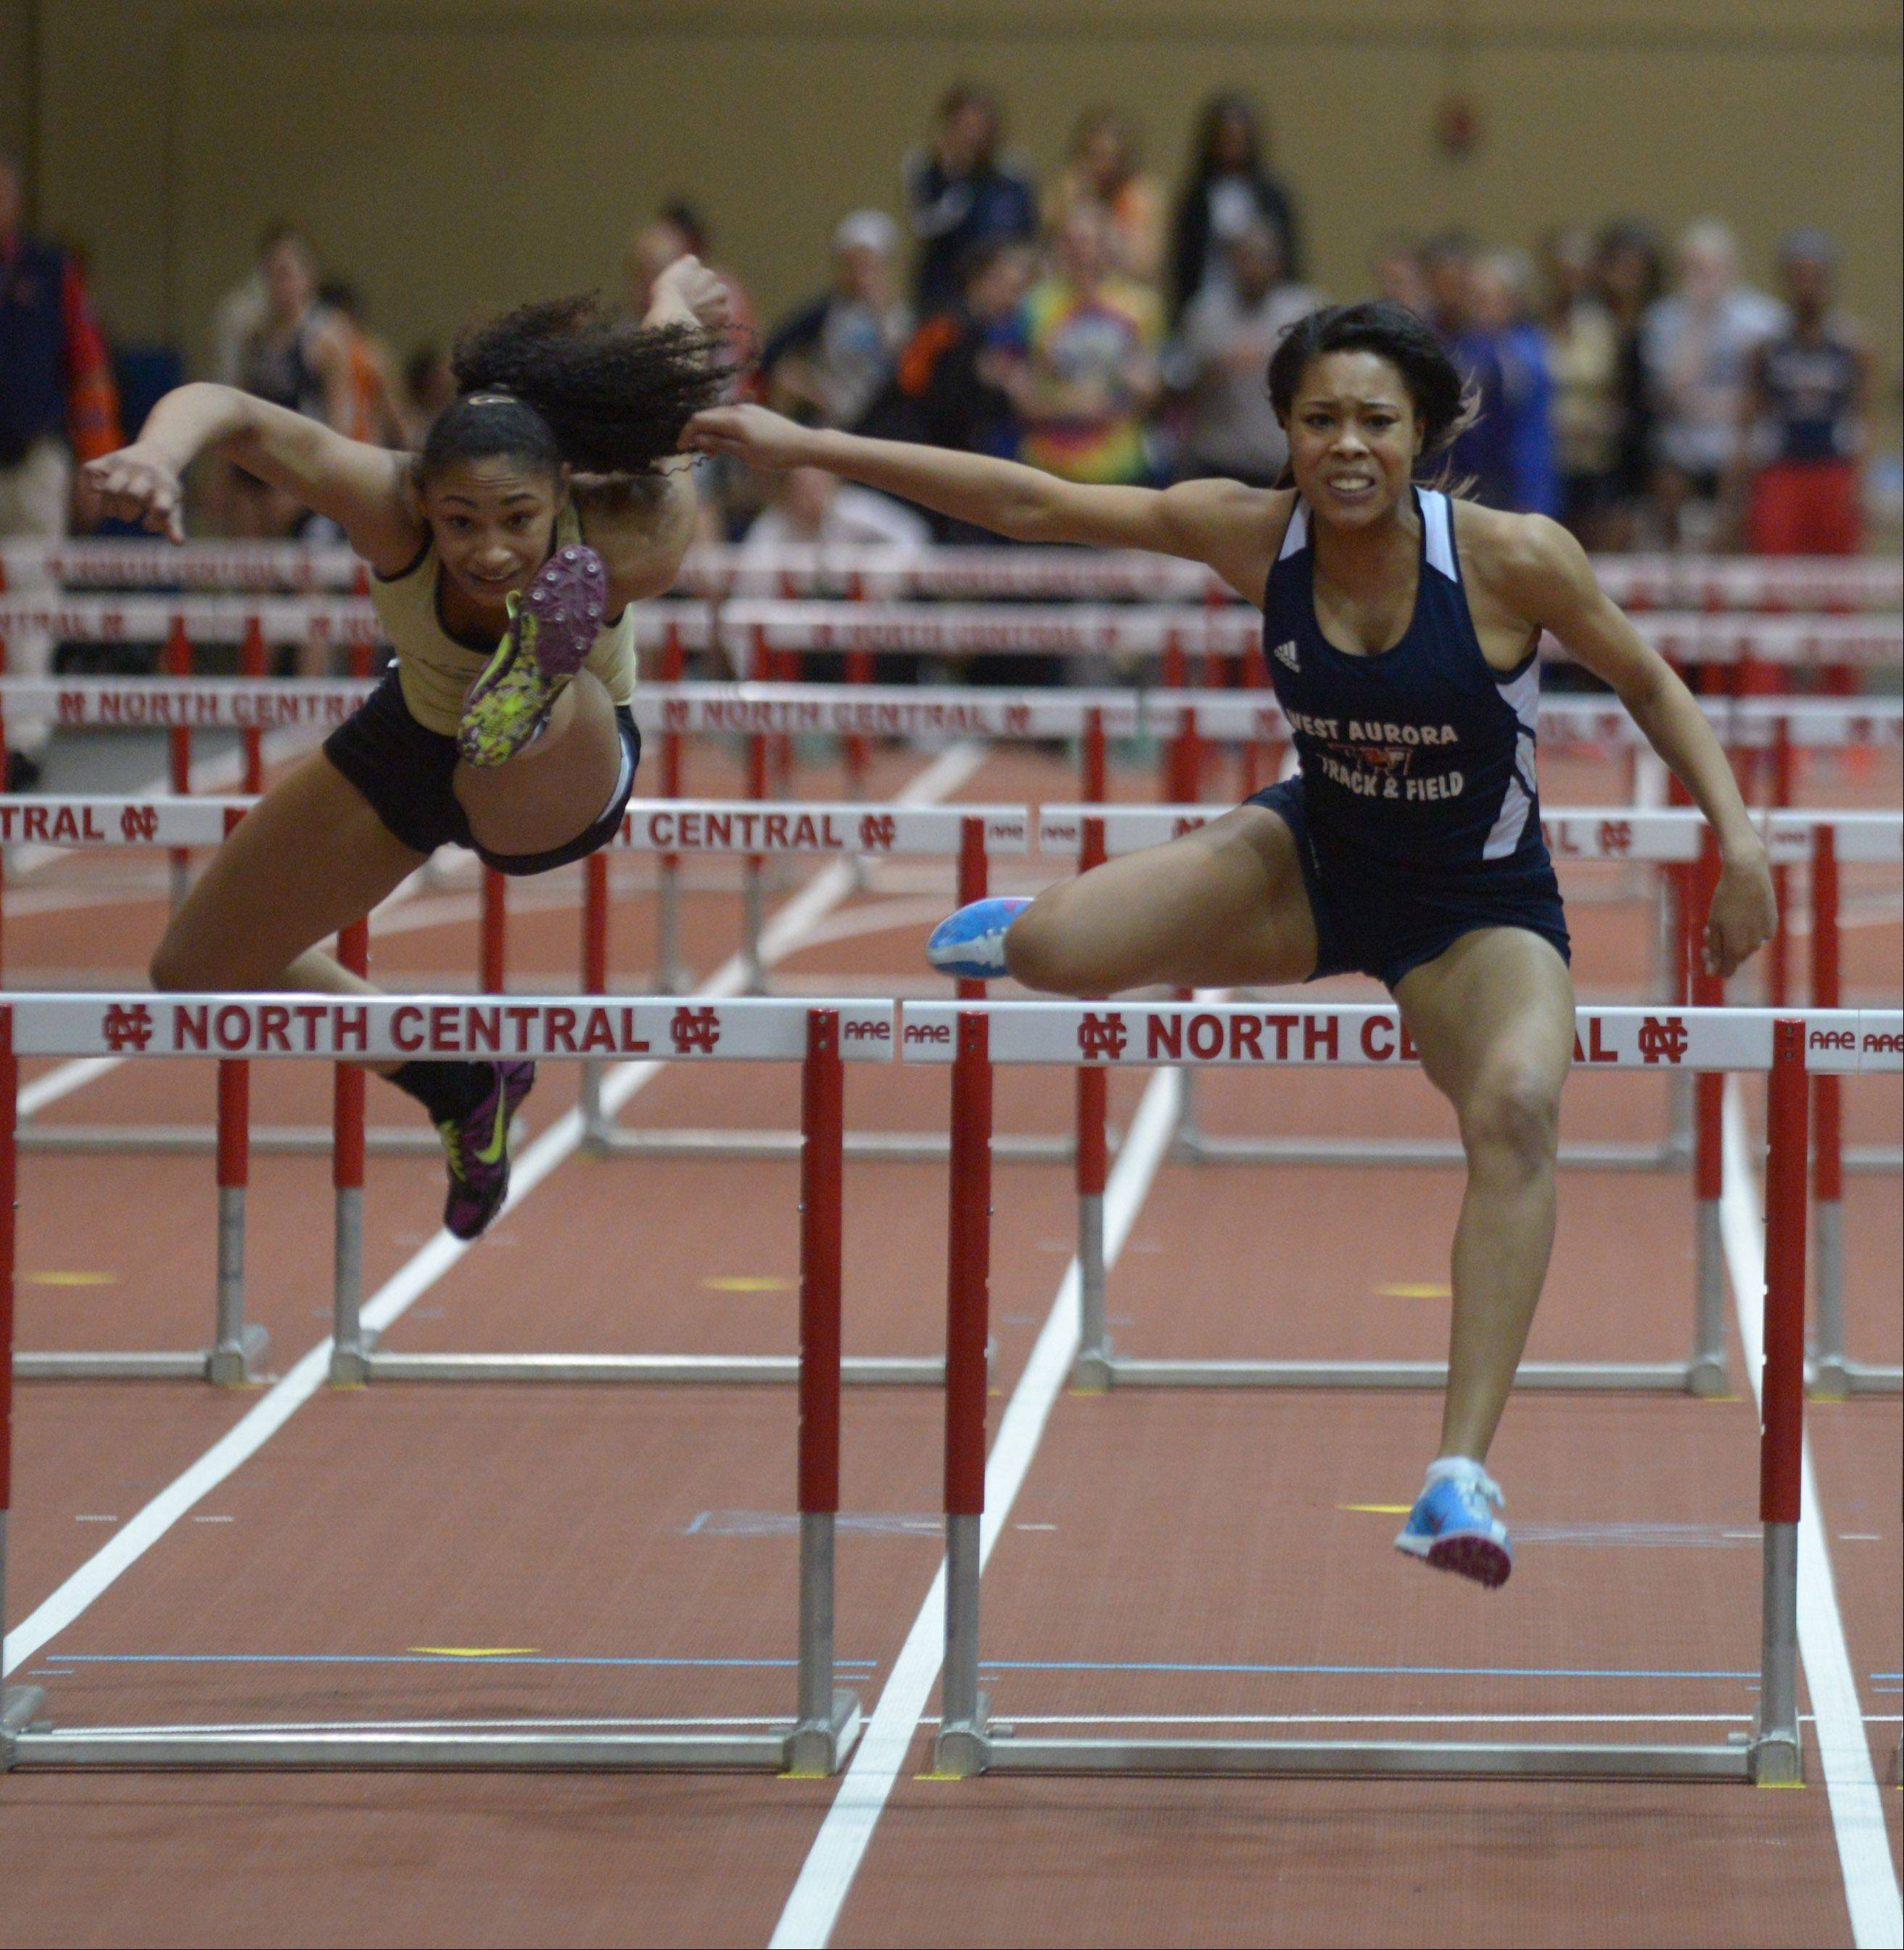 Kailey James,left, of Glenbard North and Tykia Neal of West Aurora take part in the 55 meter hurdles during the DuPage Valley Conference girls indoor track meet at North Central College Thursday.